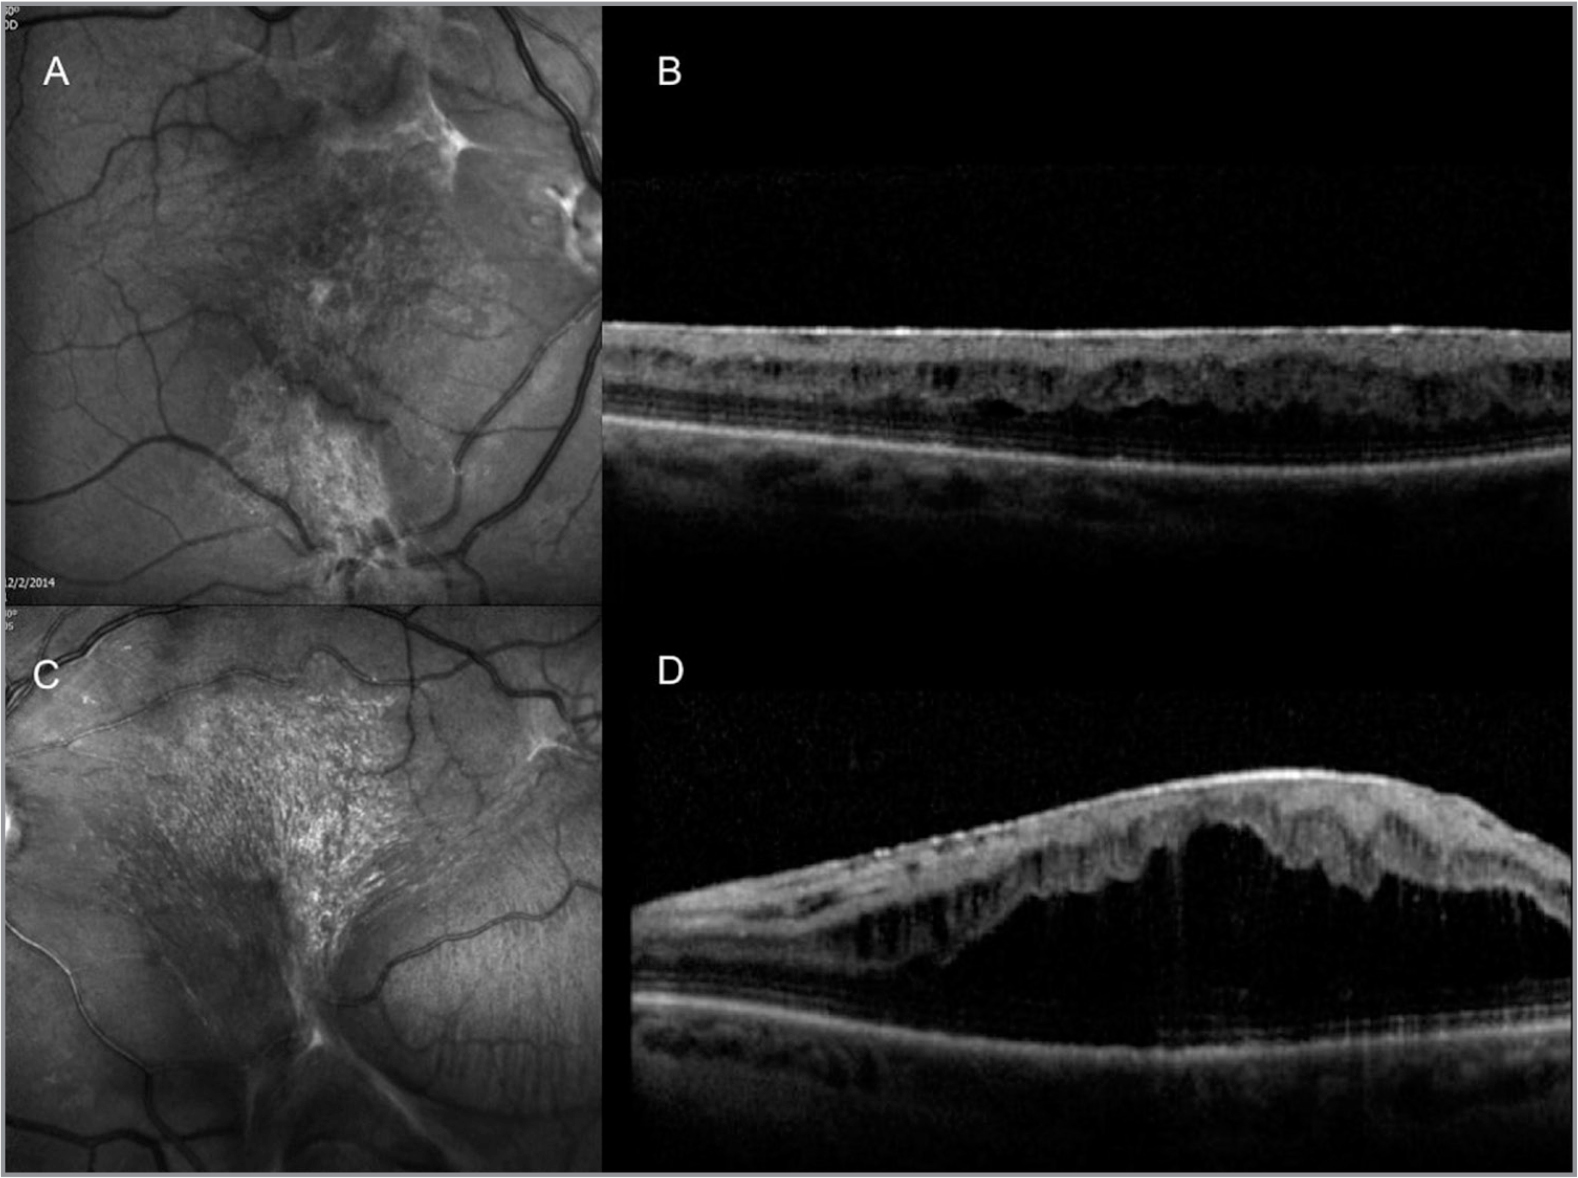 "Six months after autologous ""stem cell"" injections (ASCIs), the red-free photo (A) and optical coherence tomography (OCT) (B) of the right eye show a dense epiretinal membrane (ERM) with loss of the foveal contour. The OCT shows cystoid macular edema (CME) with appearance of outer retinal schisis. Red-free photo of the left eye (C) shows a denser ERM that is causing tenting of the retina. The OCT of the left eye (D) shows that the ERM is accompanied by severe CME that has resulted in a large schisis cavity that disrupts the photoreceptor segments."